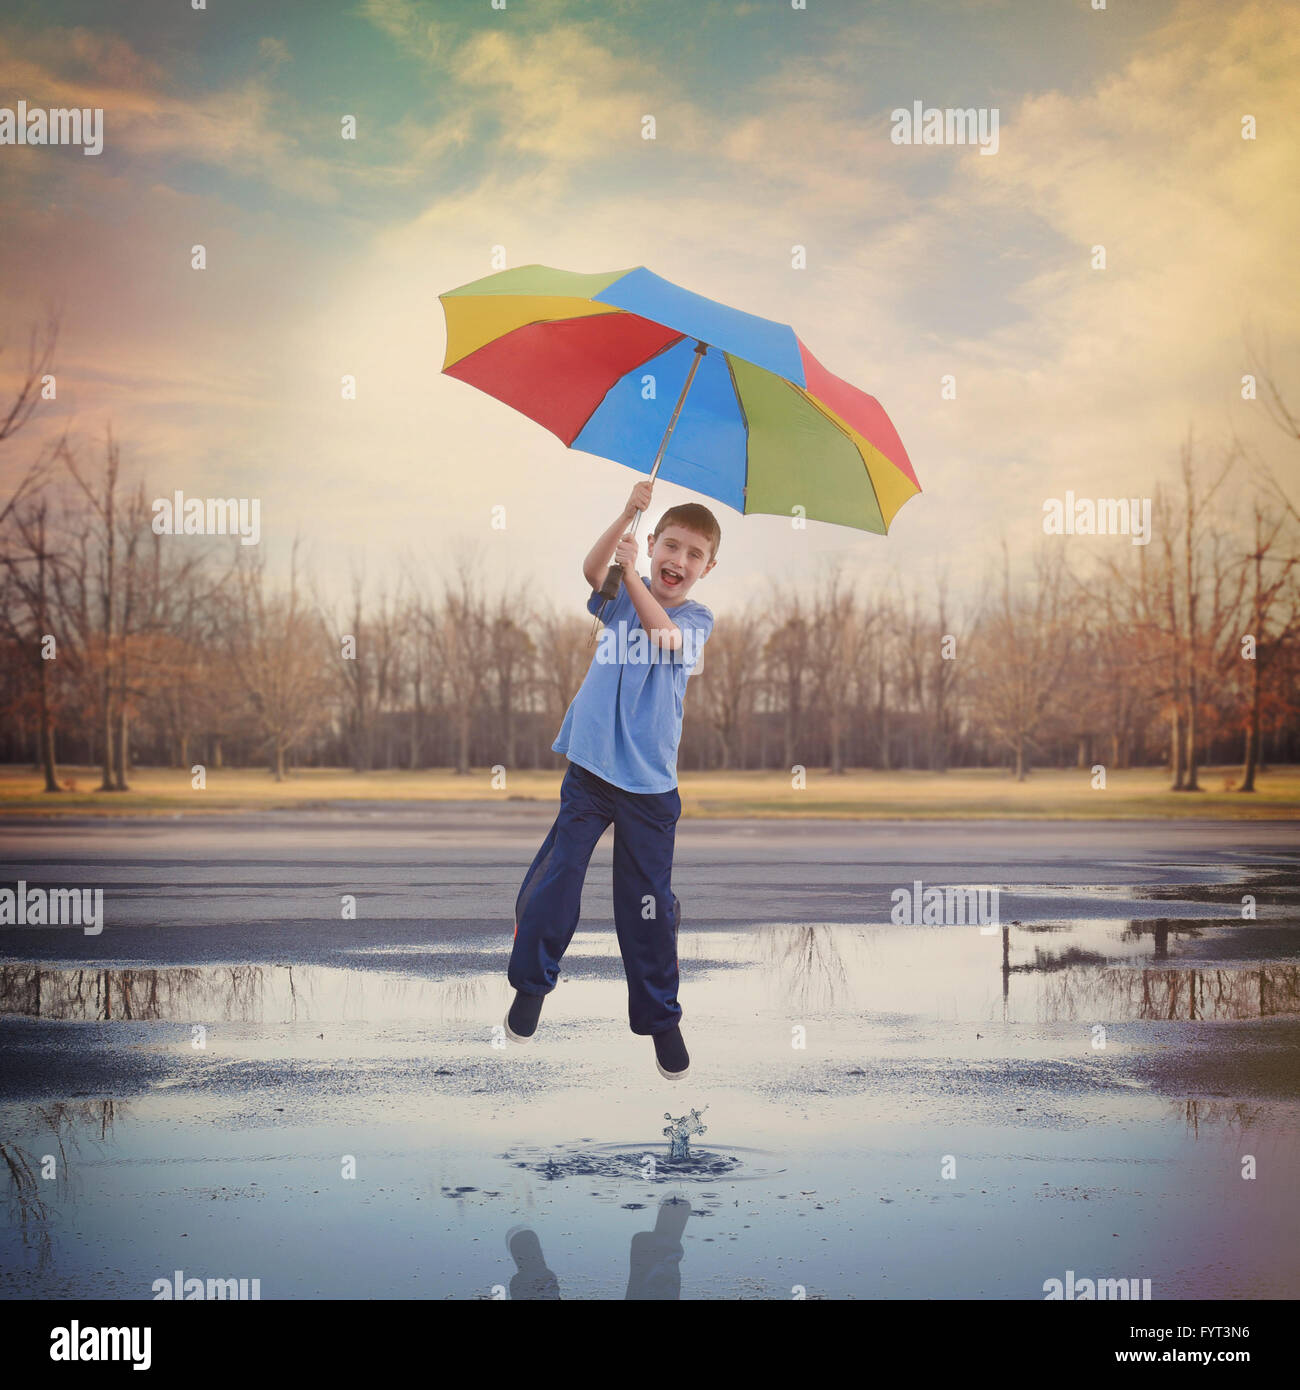 A boy is jumping high in the air up to the sky with a rainbow umbrella and a rain puddle with a splash of water - Stock Image